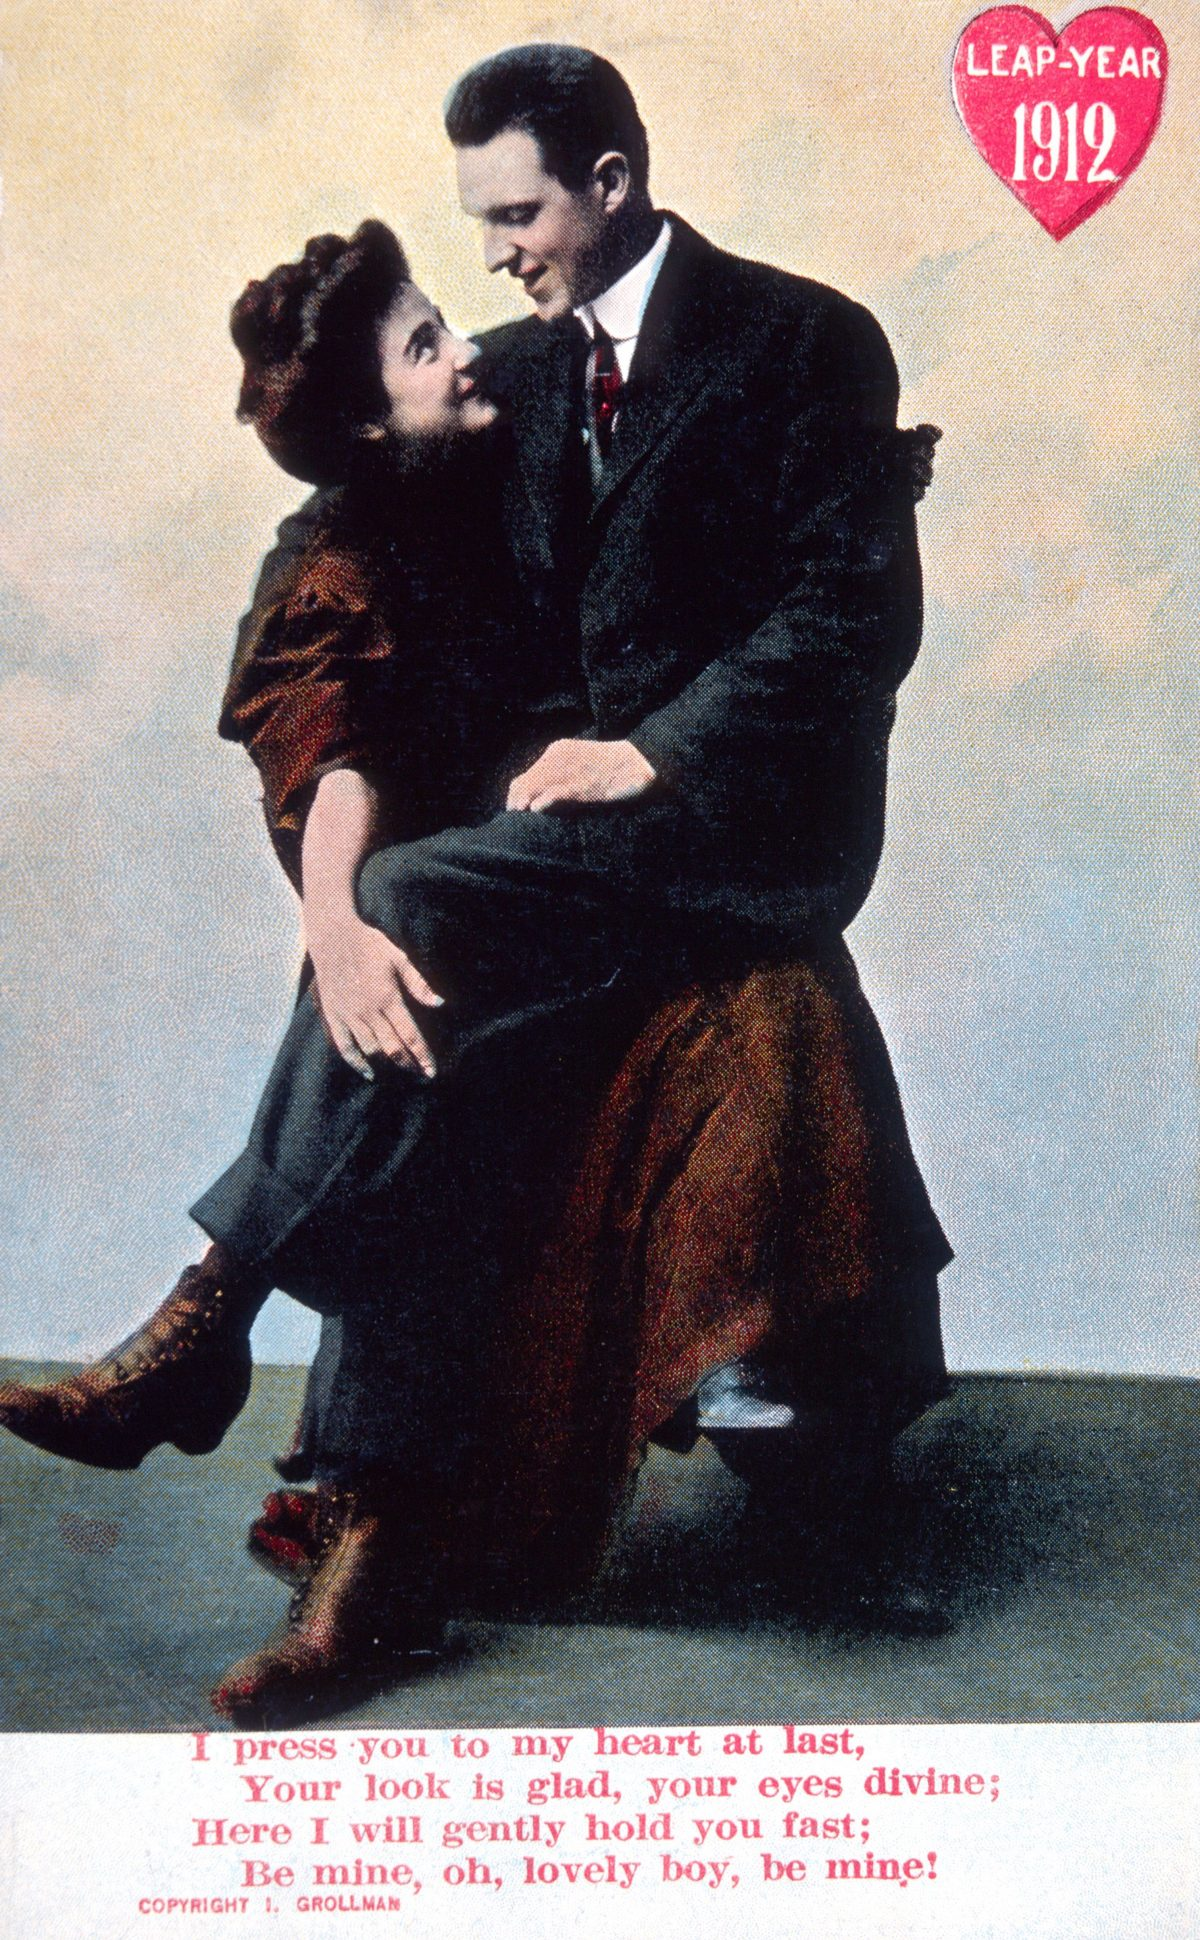 Man Seated on Woman's Lap, Leap Year, Postcard, circa 1912  1912